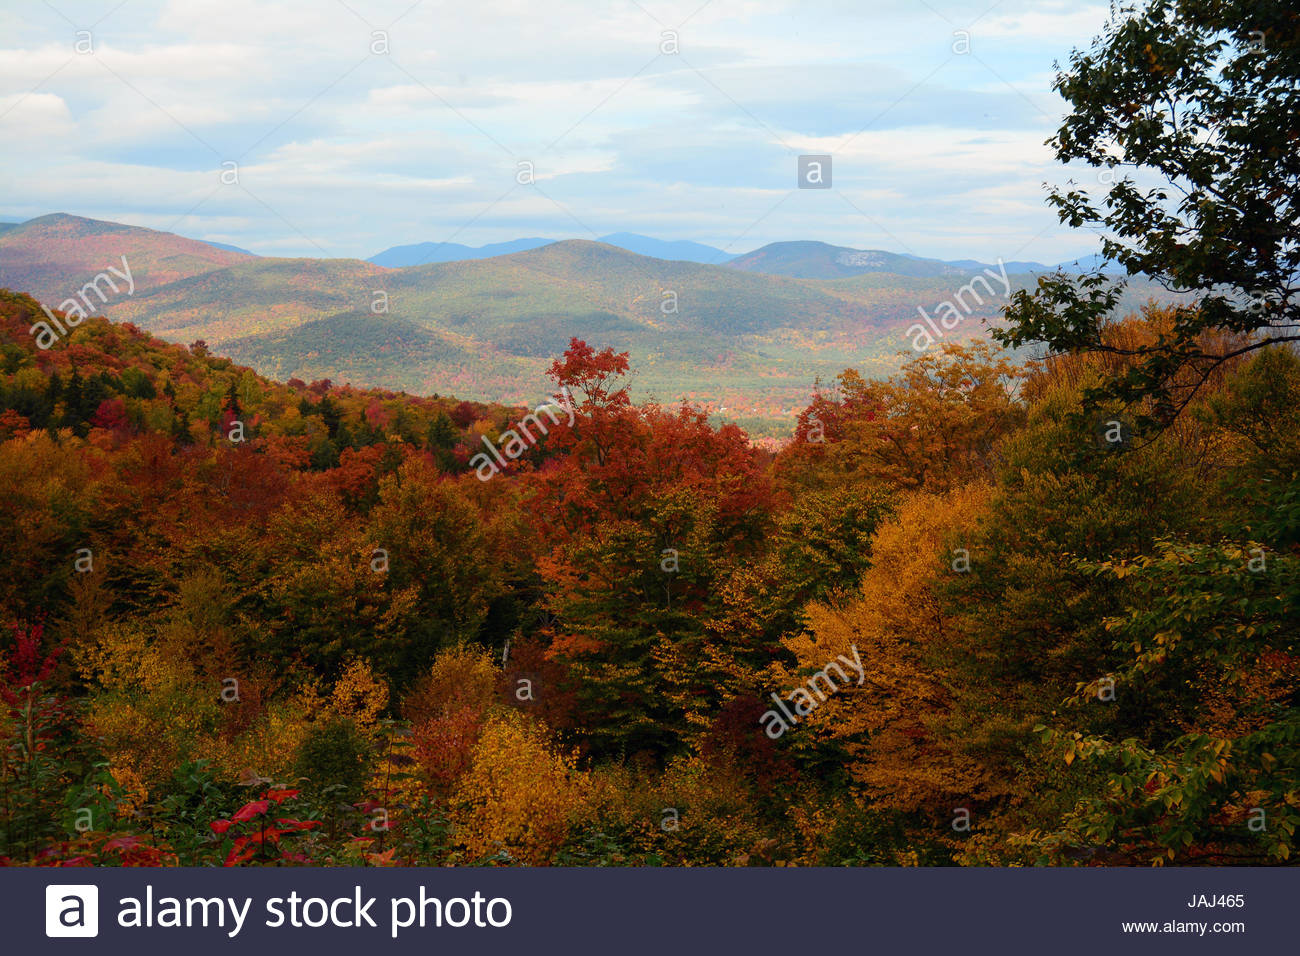 Fall foliage in the White Mountains of New Hampshire. - Stock Image